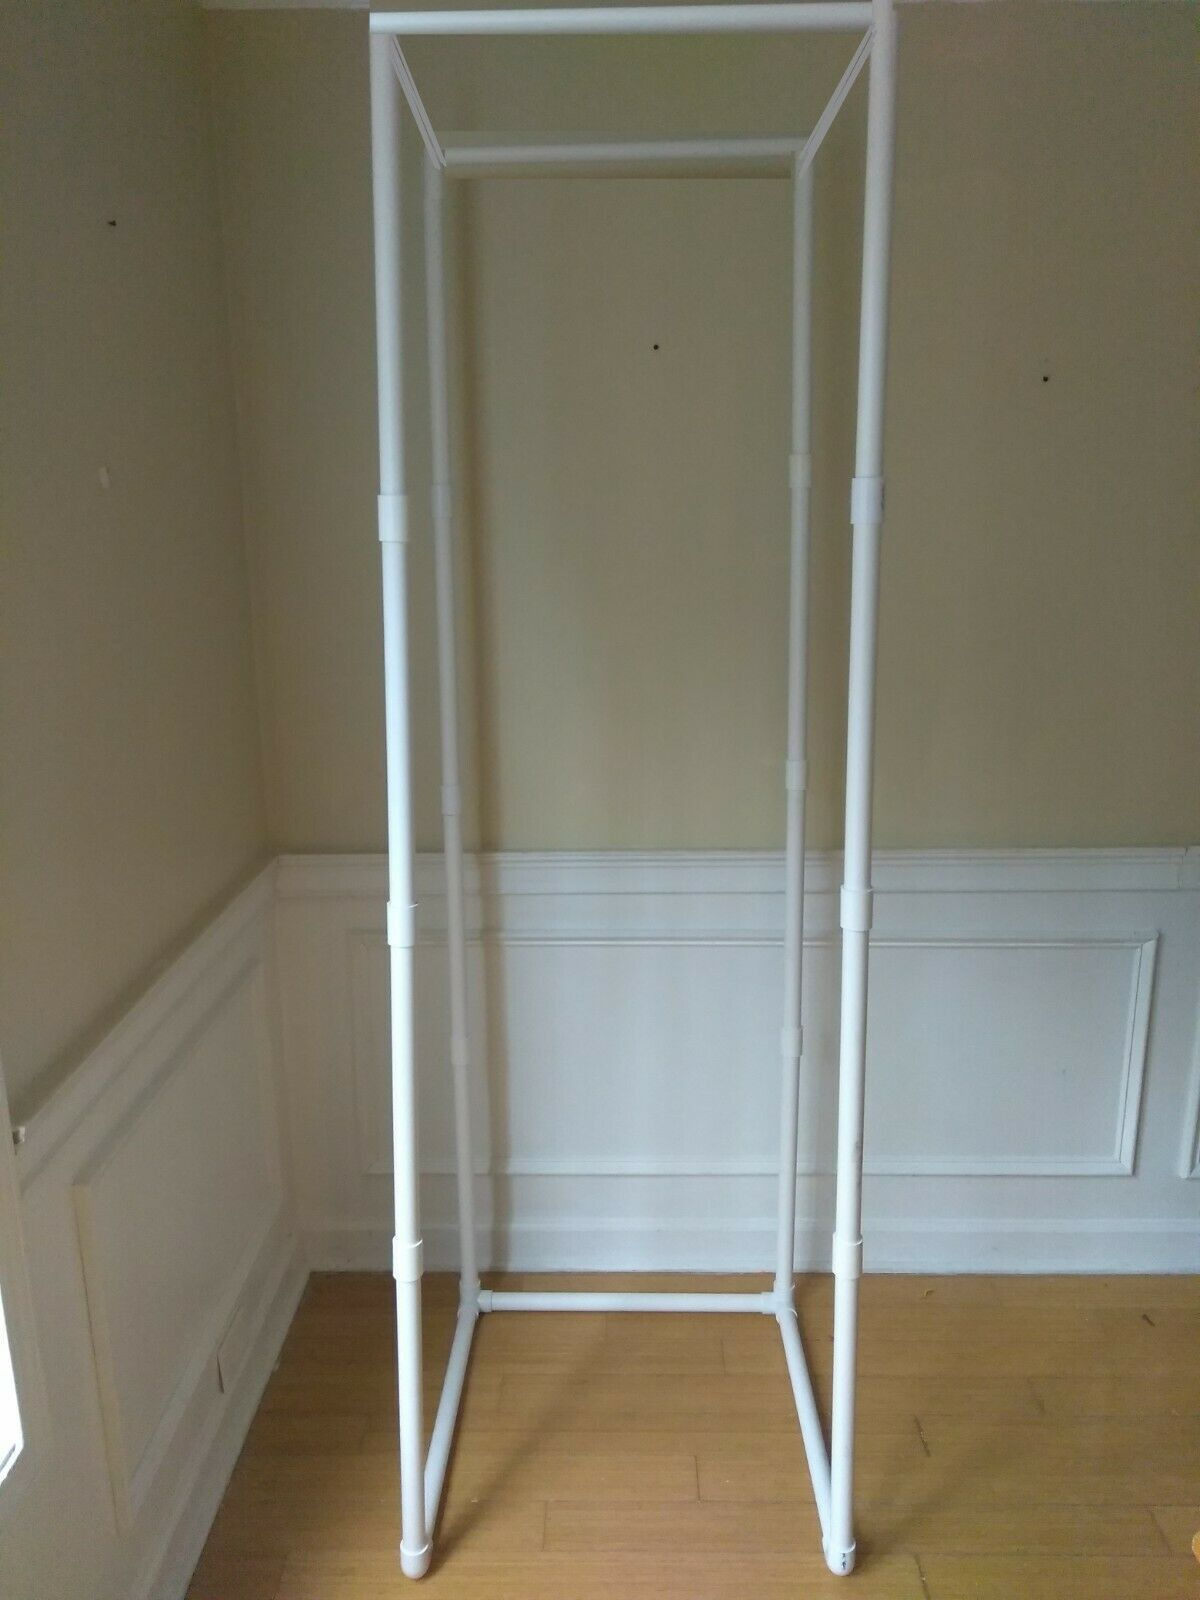 MICStiefelH-911   FRAME ONLY Stand-In PORTABLE Vocal Stiefelh  FRAME ONLY